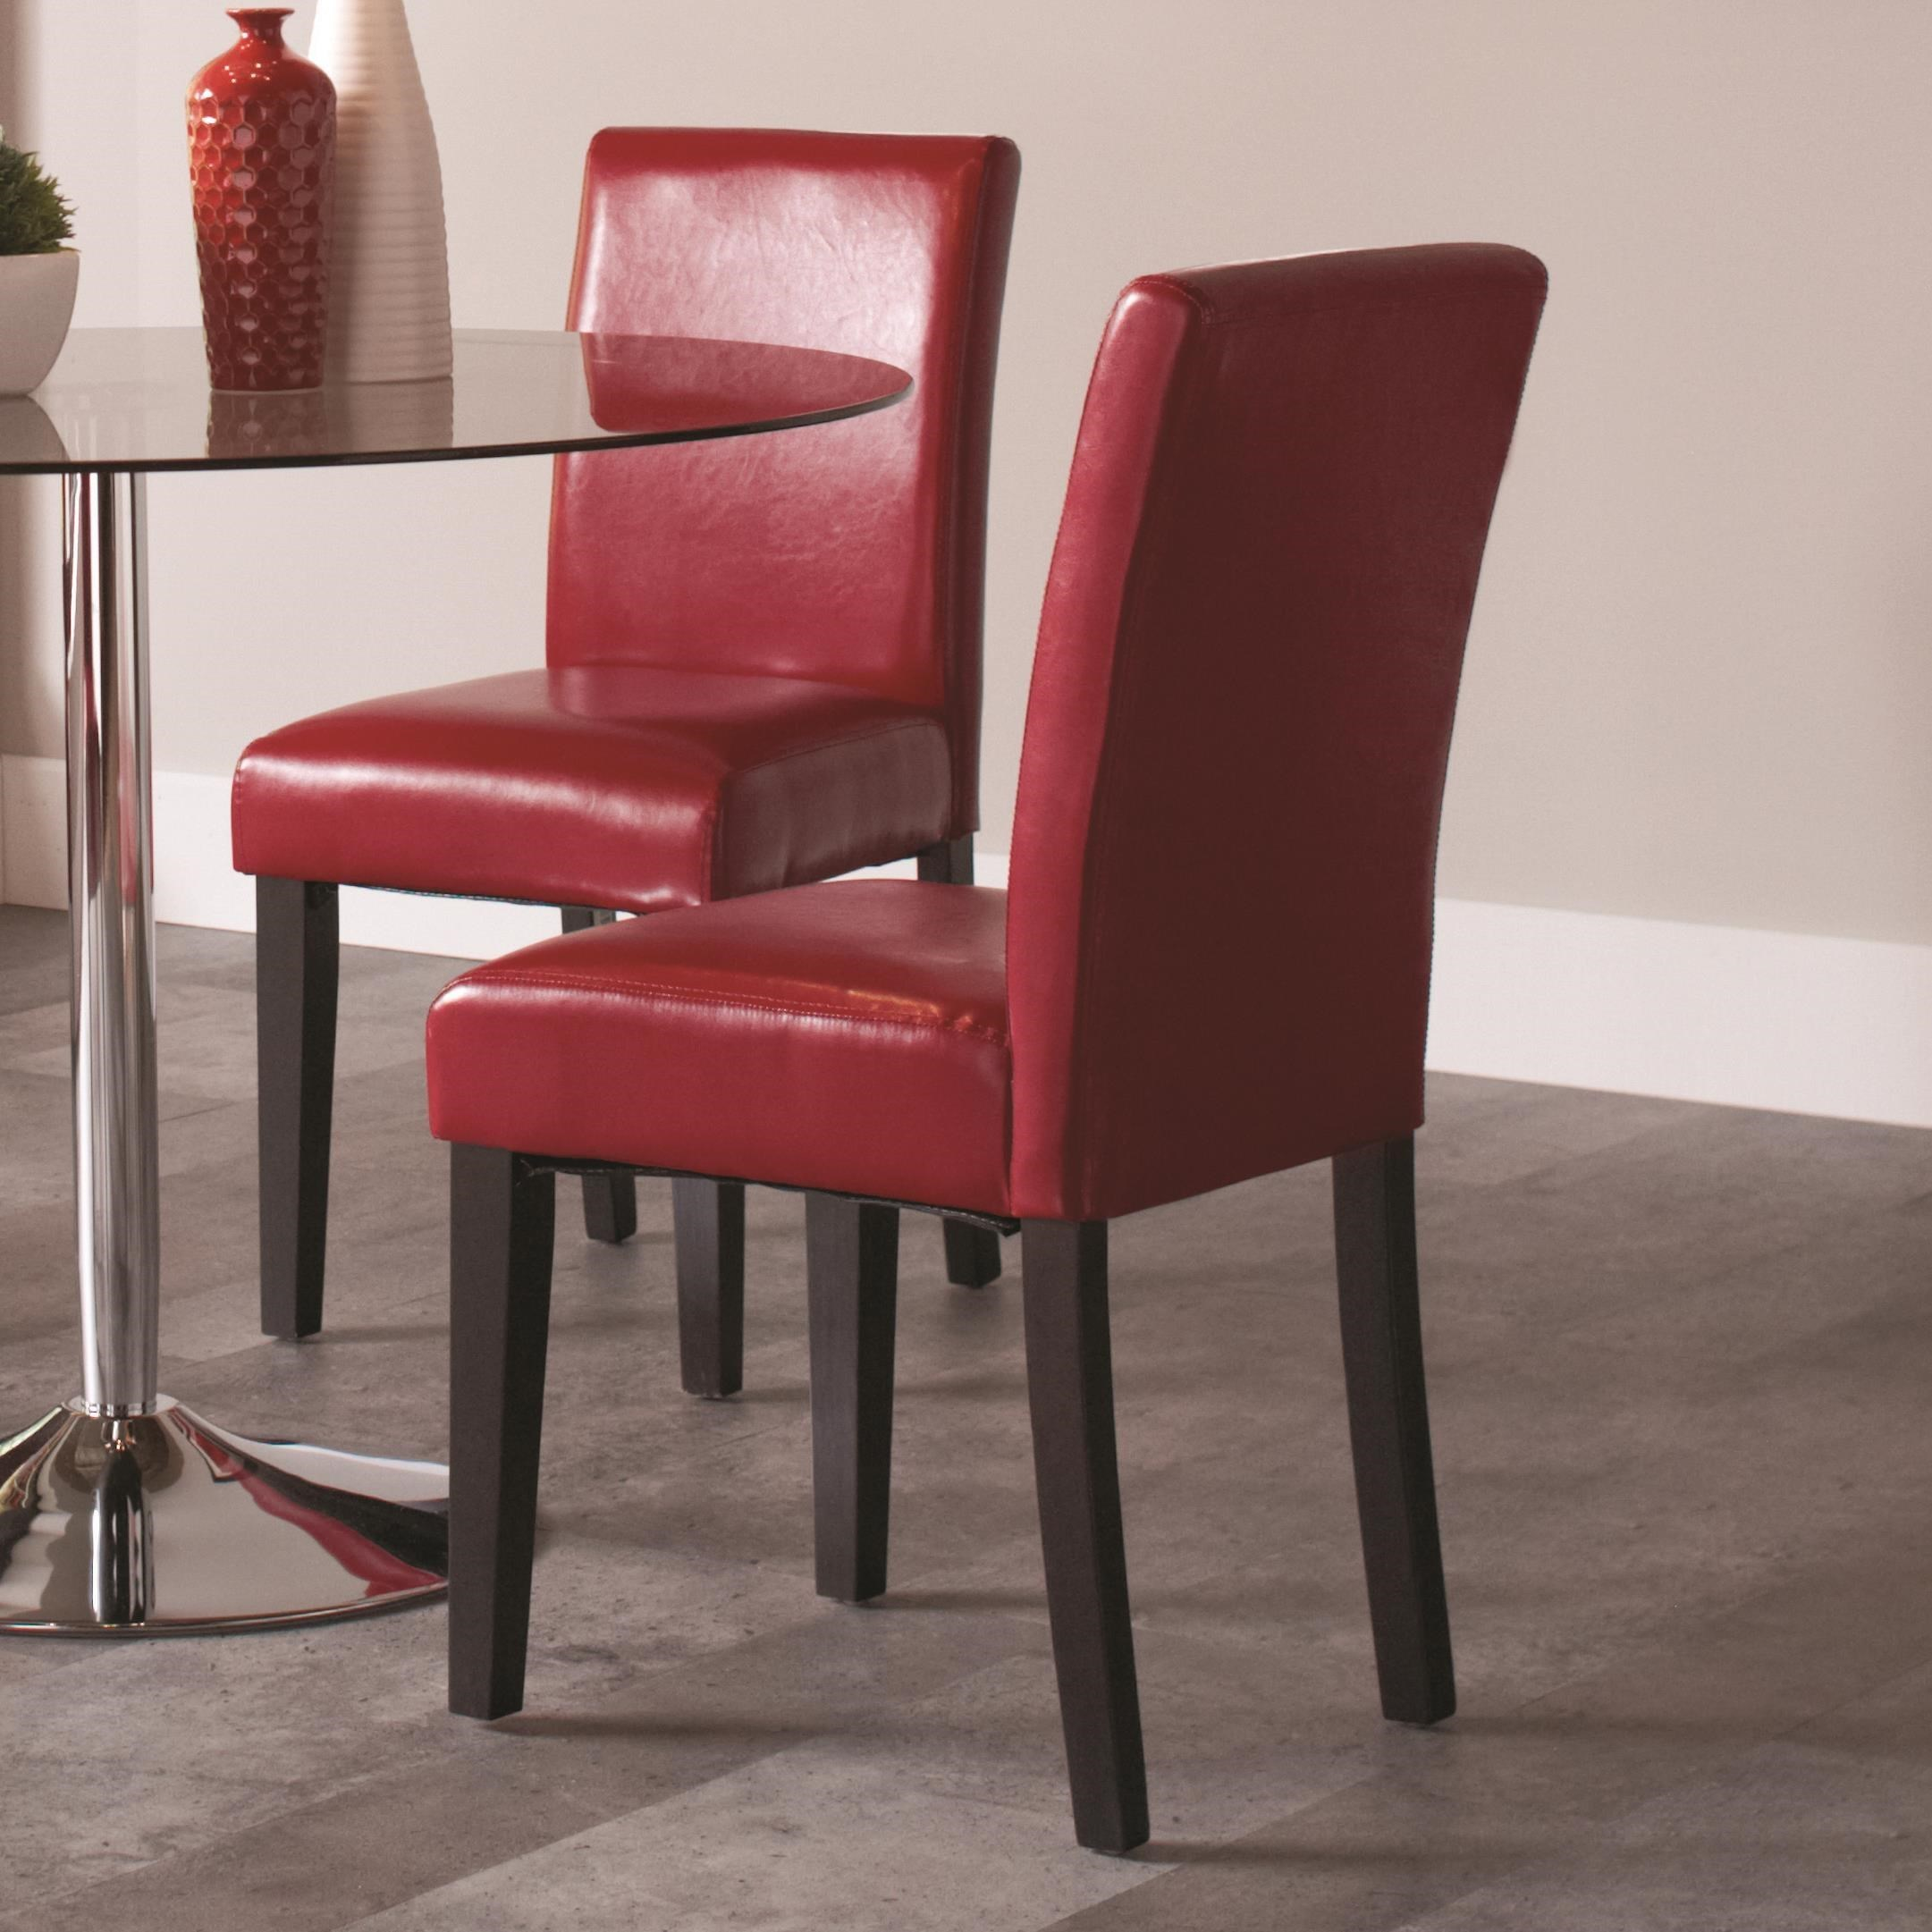 Coaster Clemente Upholstered Dining Chair - Item Number: 101786